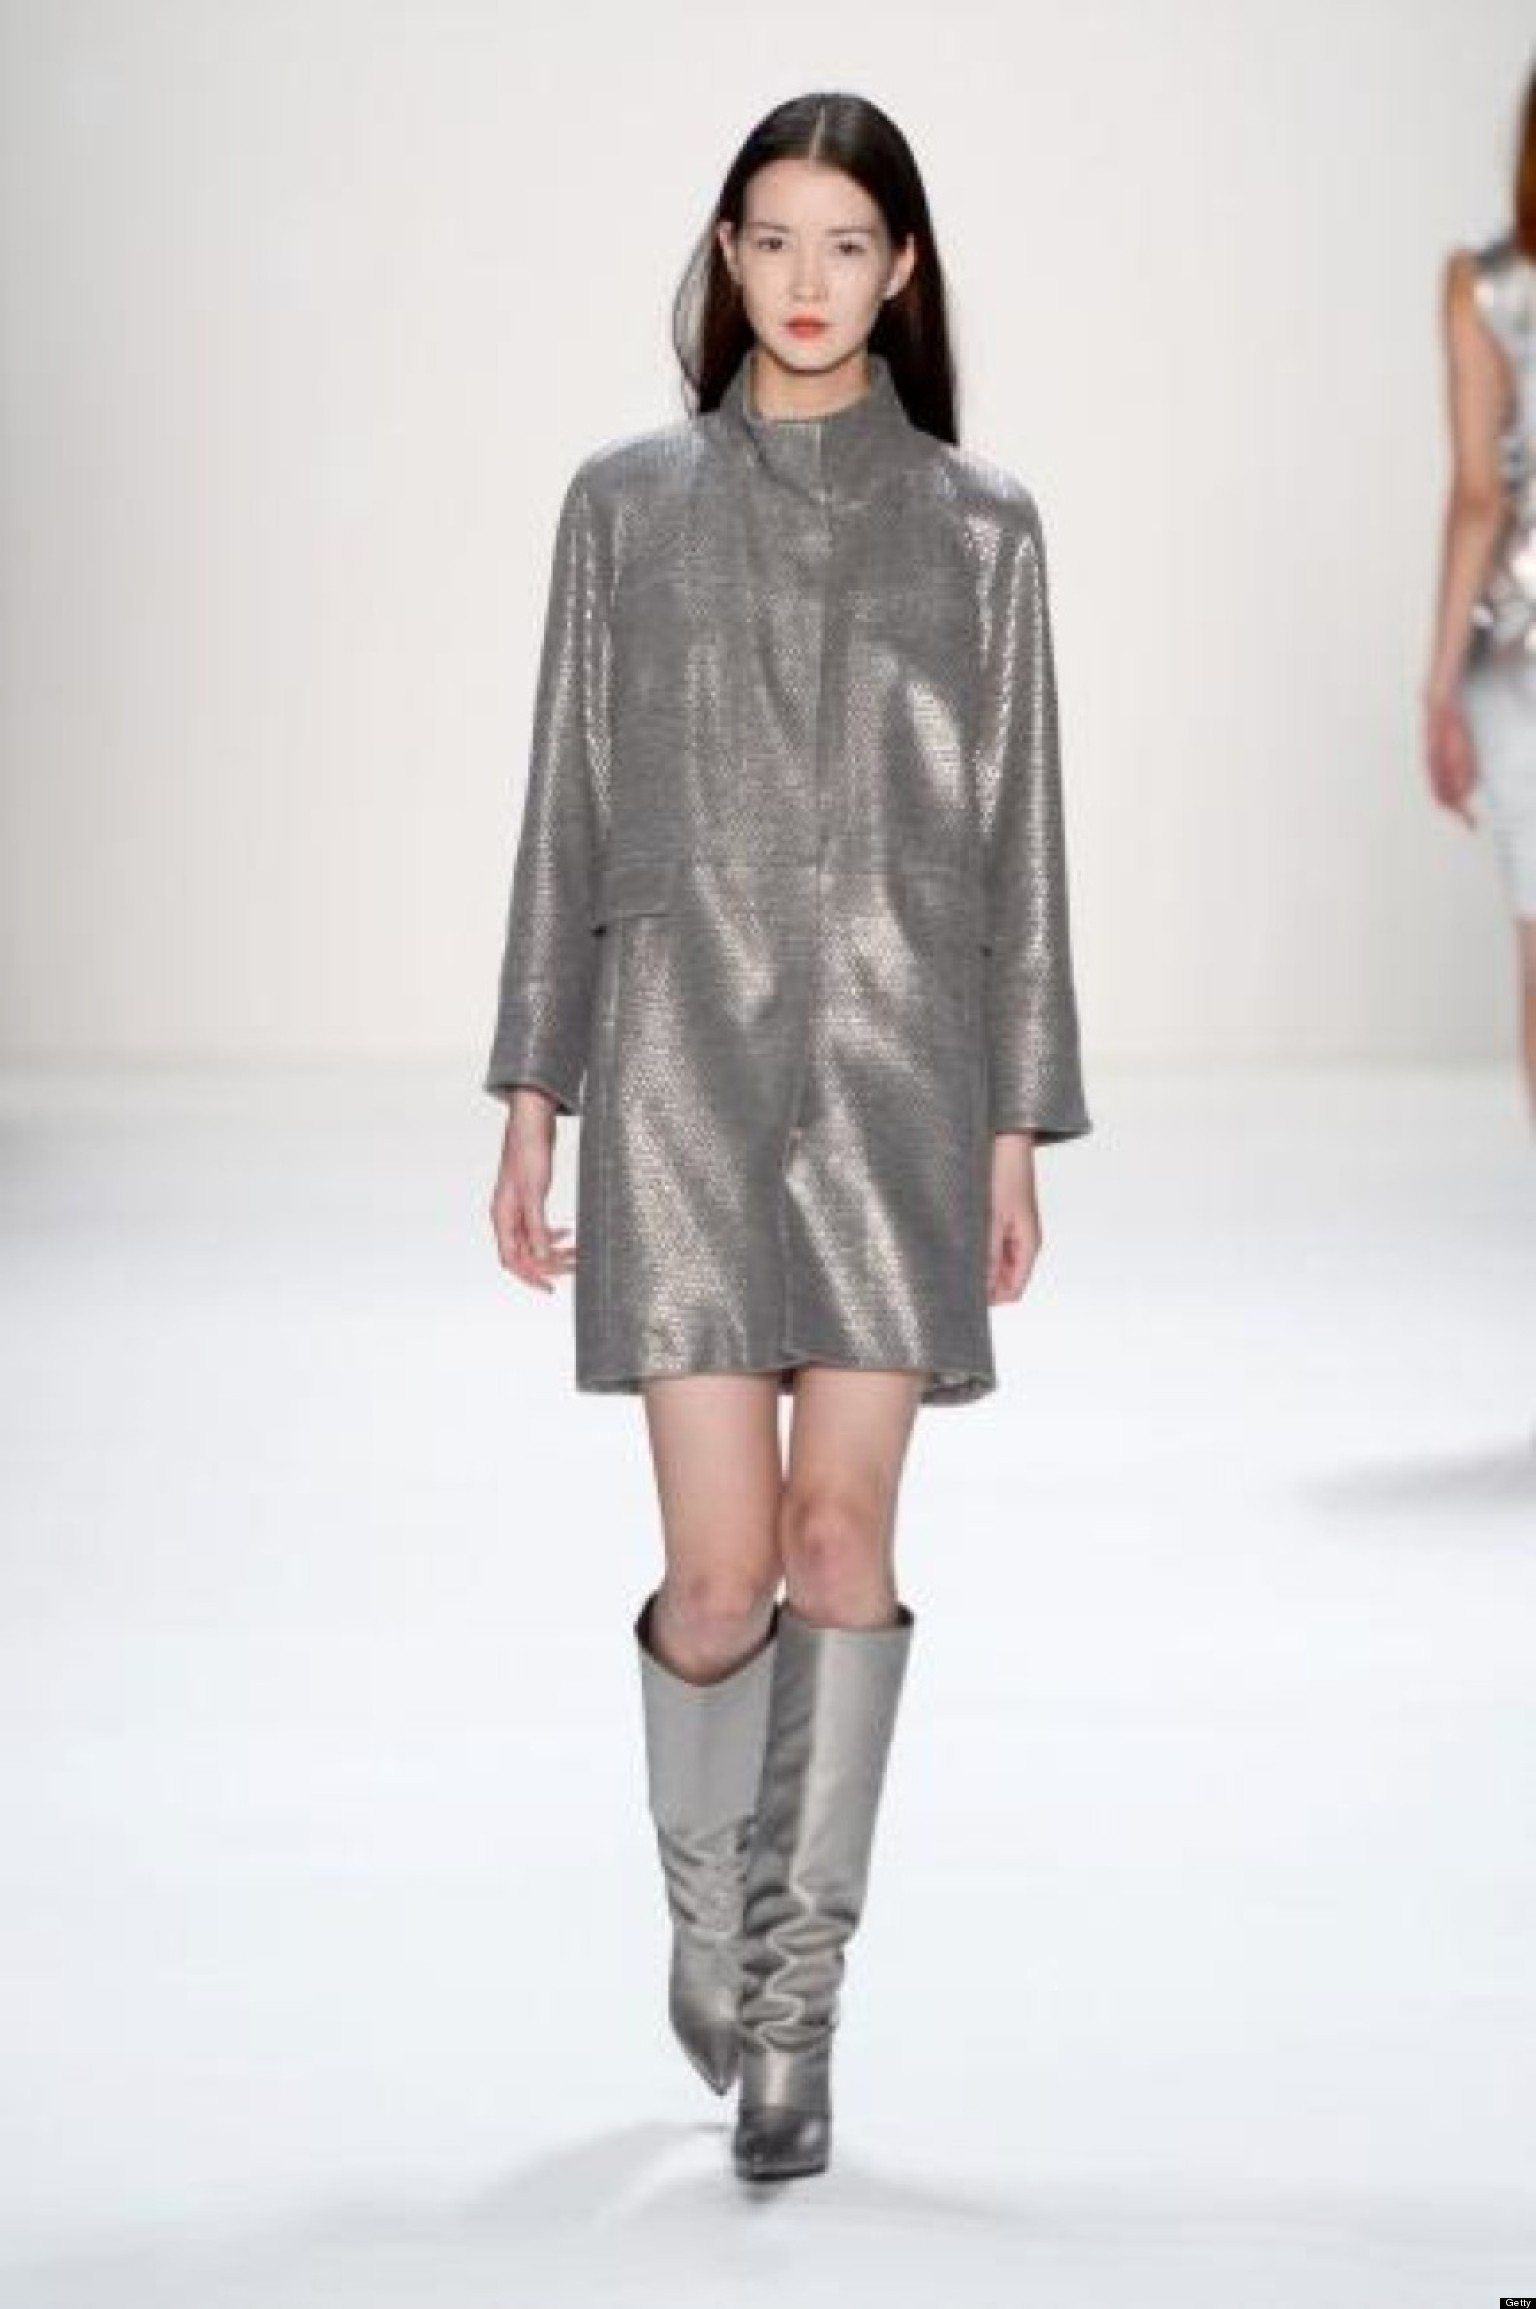 Fashion Trends: 5 Fashion Trends For Fall 2013 From Berlin